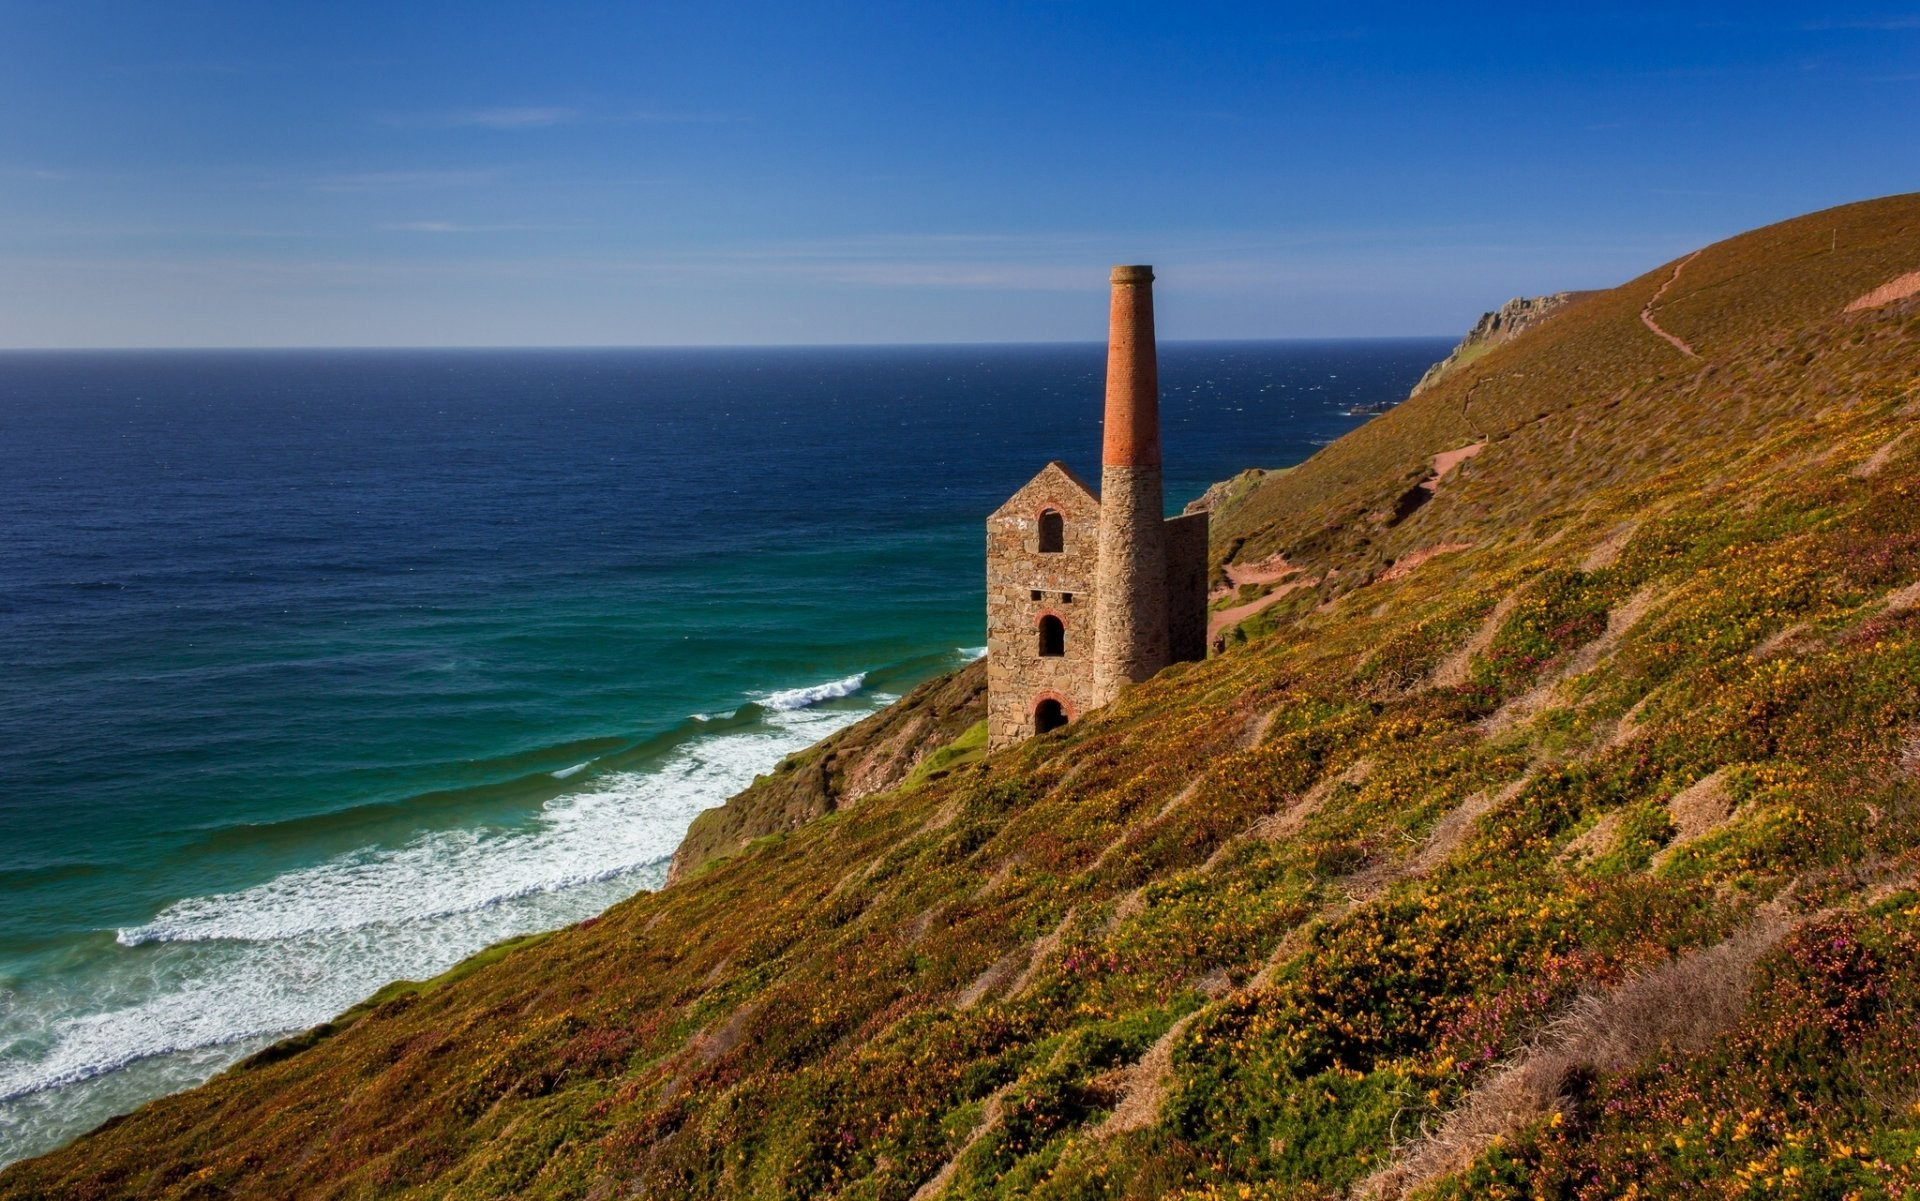 towanroath shaft engine house wheal coates porthtowan cornwall england  celtic sea porttovan cornwall england celtic sea